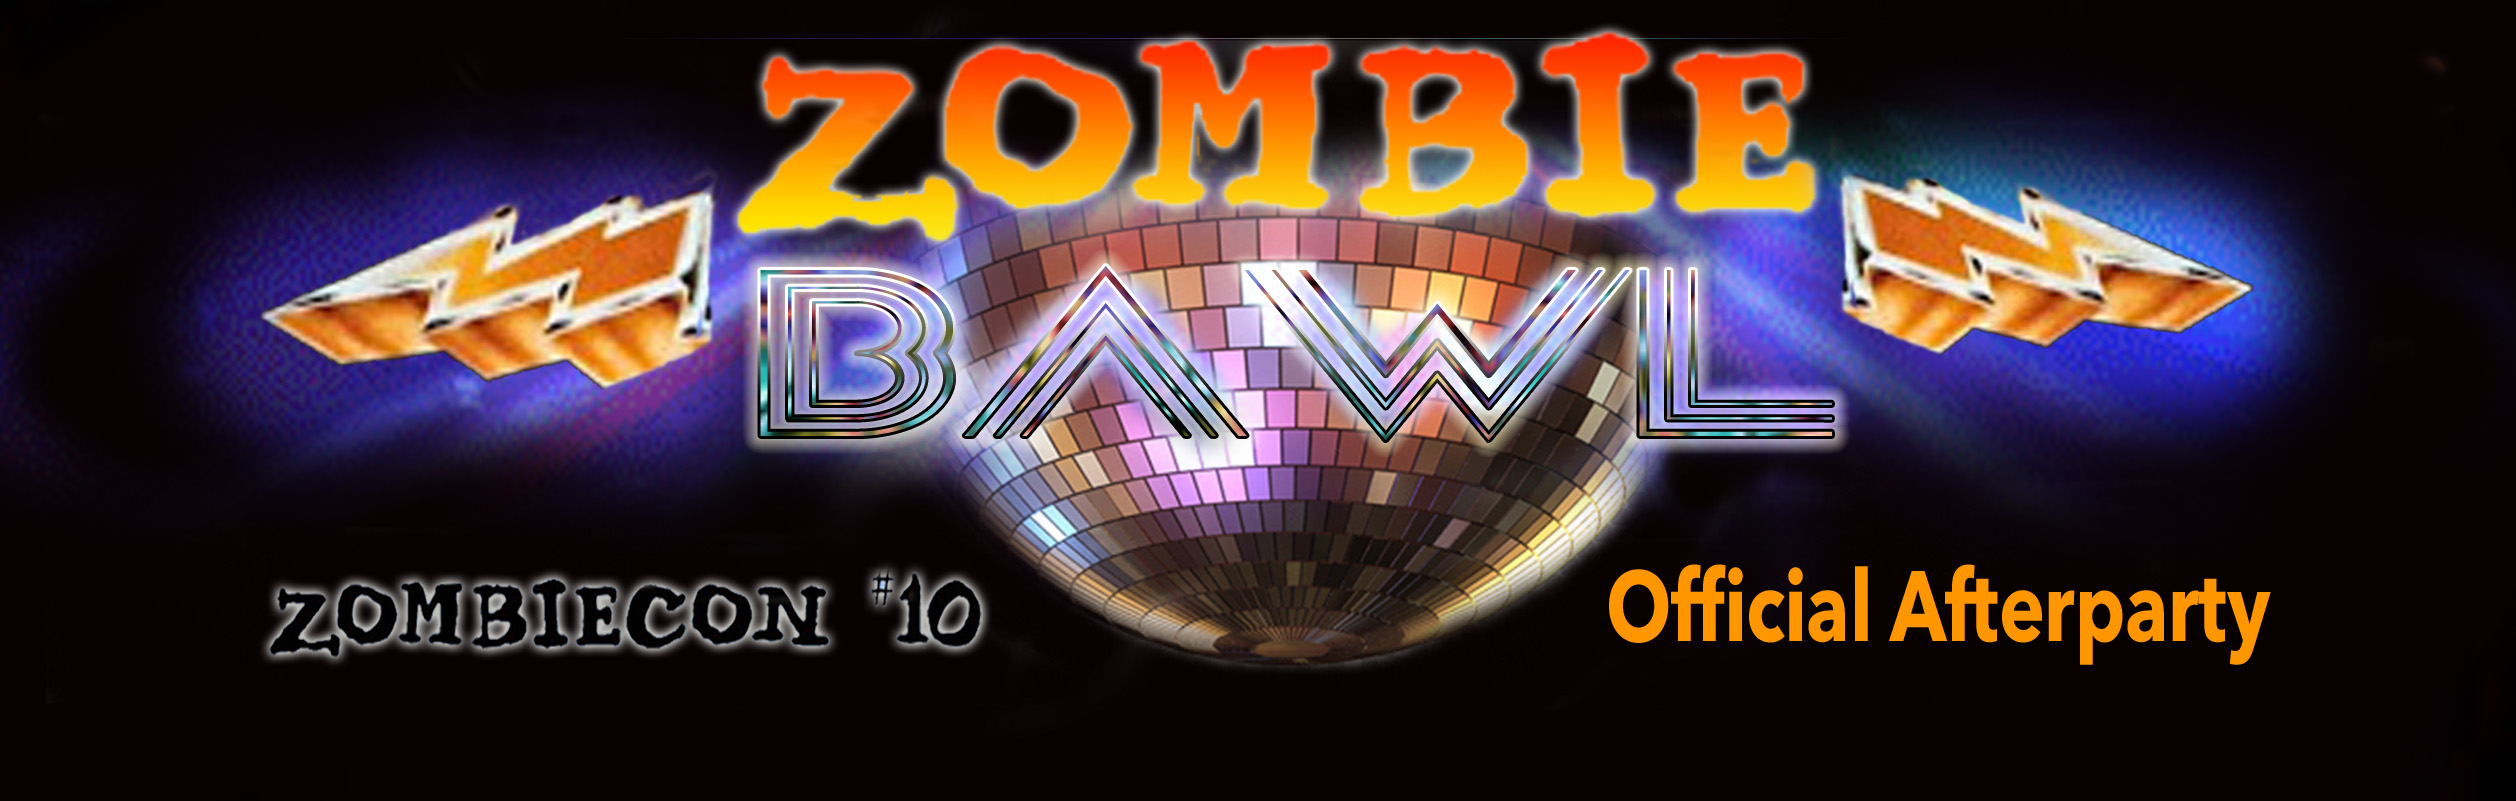 Zombie Bawl Quick FACEBOOK Banner